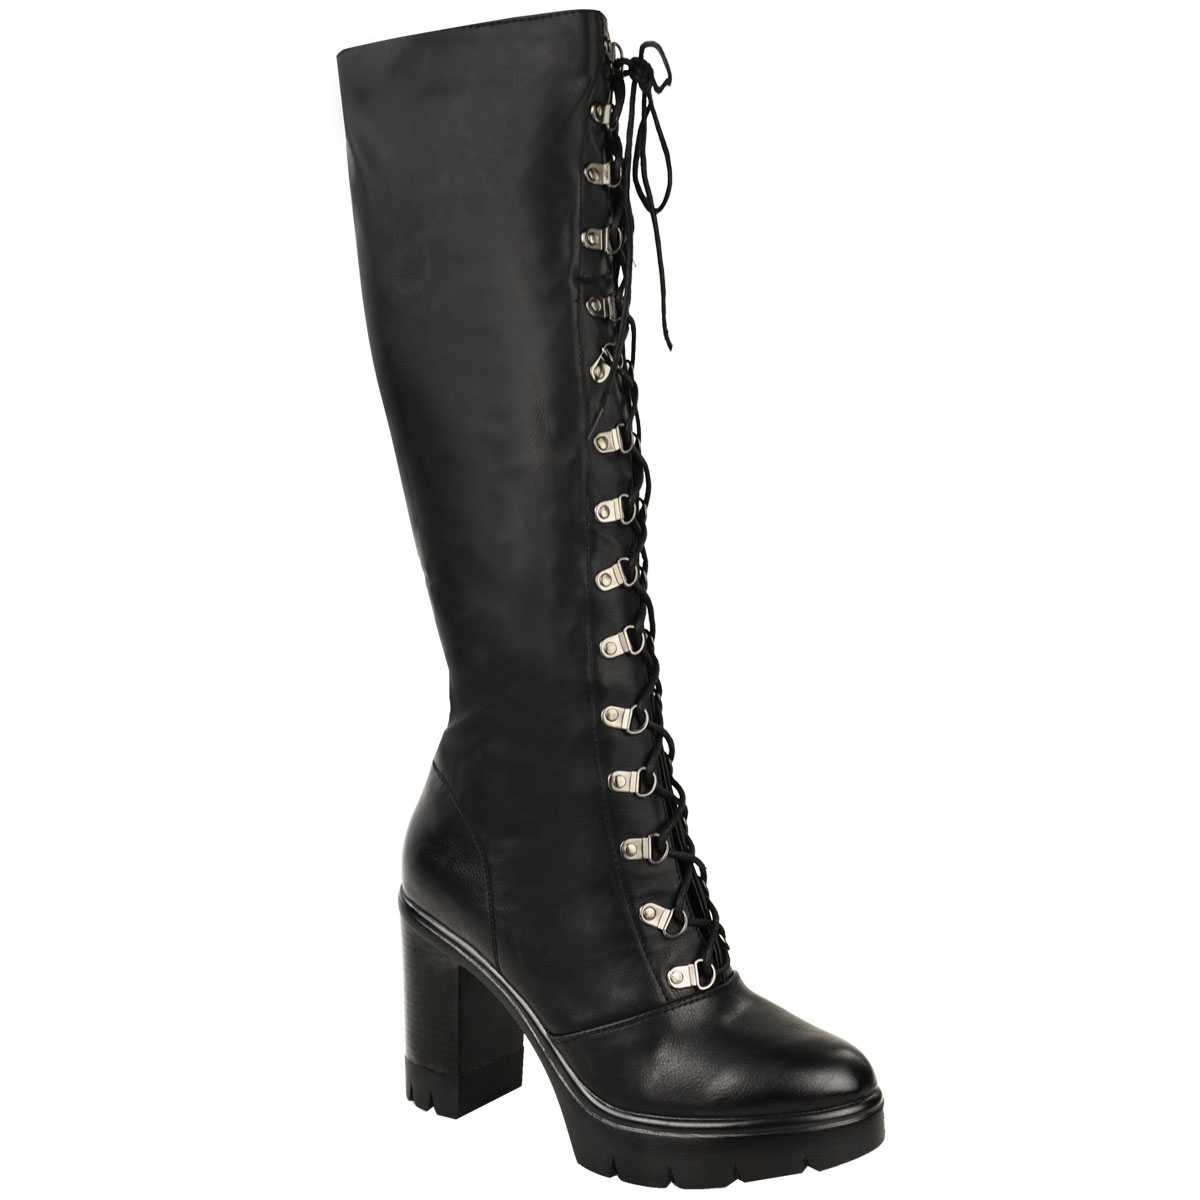 70s Zodiac Leather Boots . Lace Up Knee High Boots Size 7